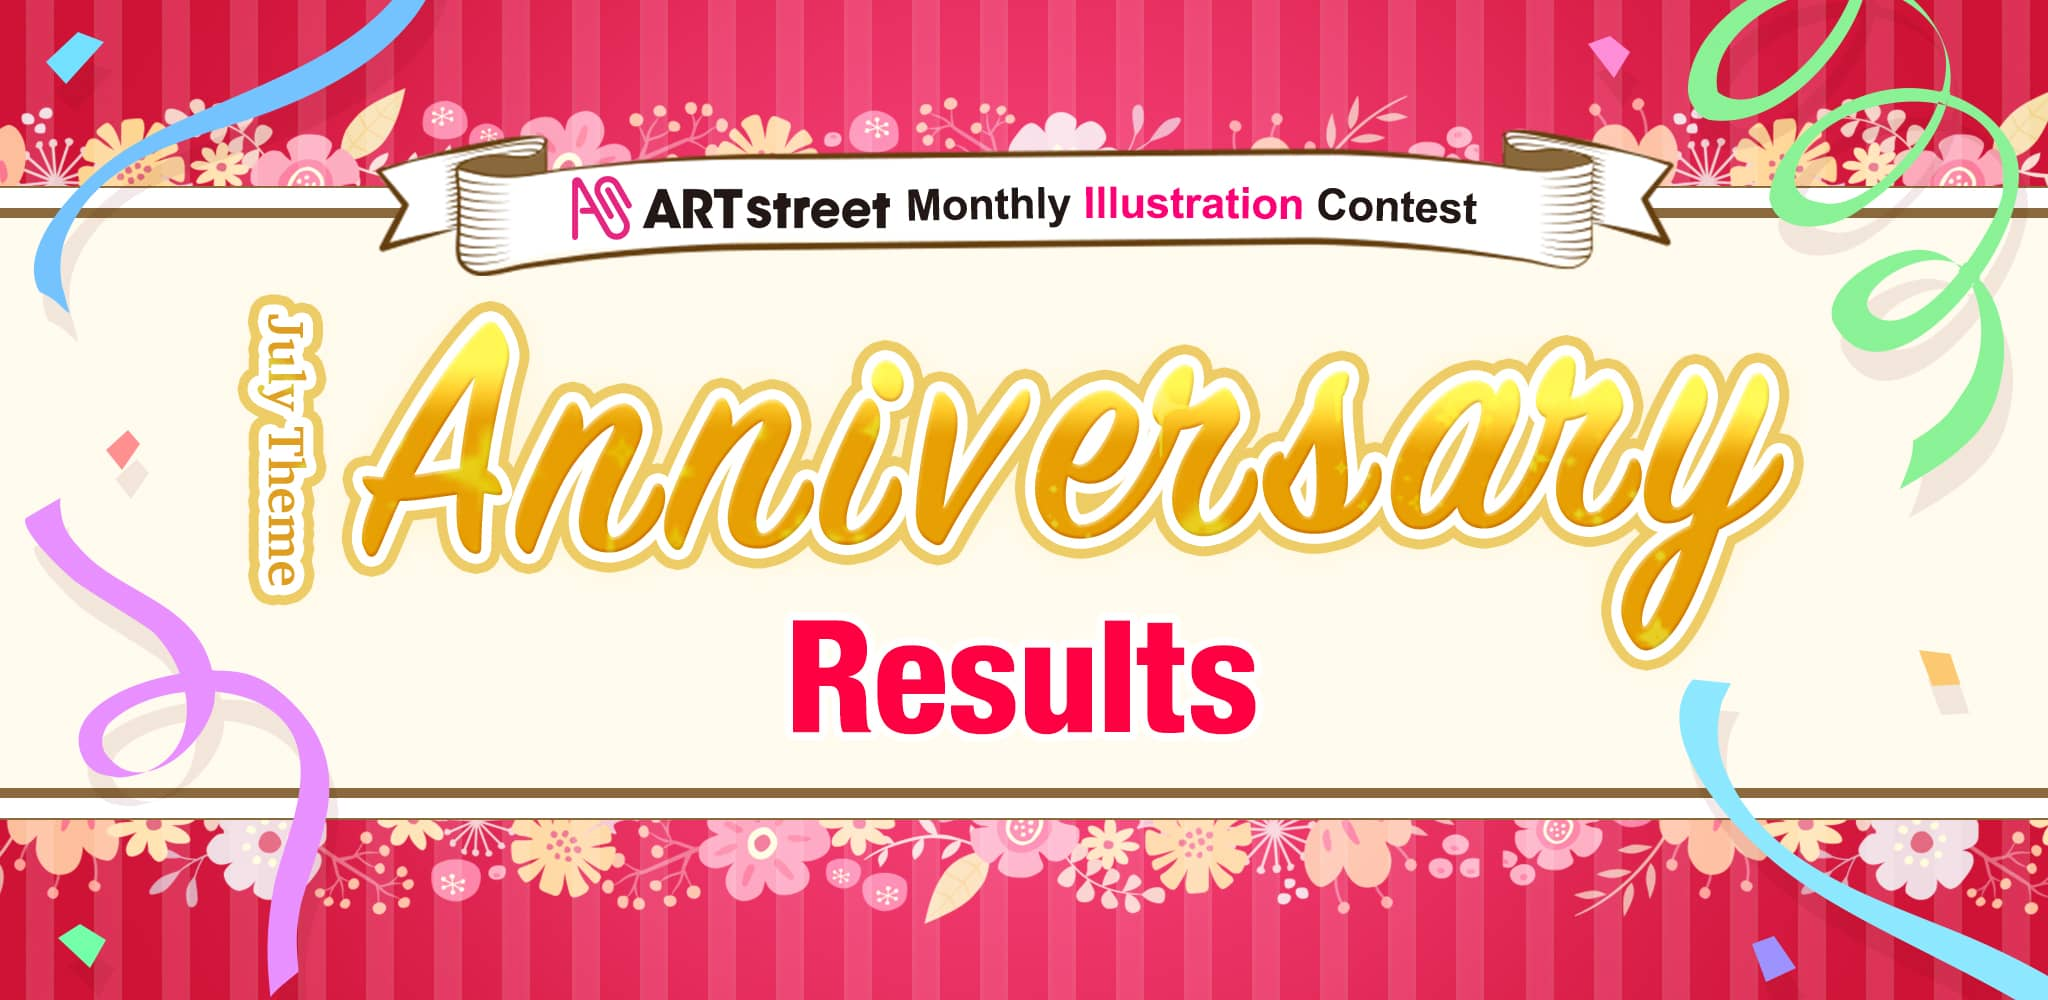 ART street Monthly Illustration Contest July Theme: Anniversary Results | Contest - ART street by MediBang